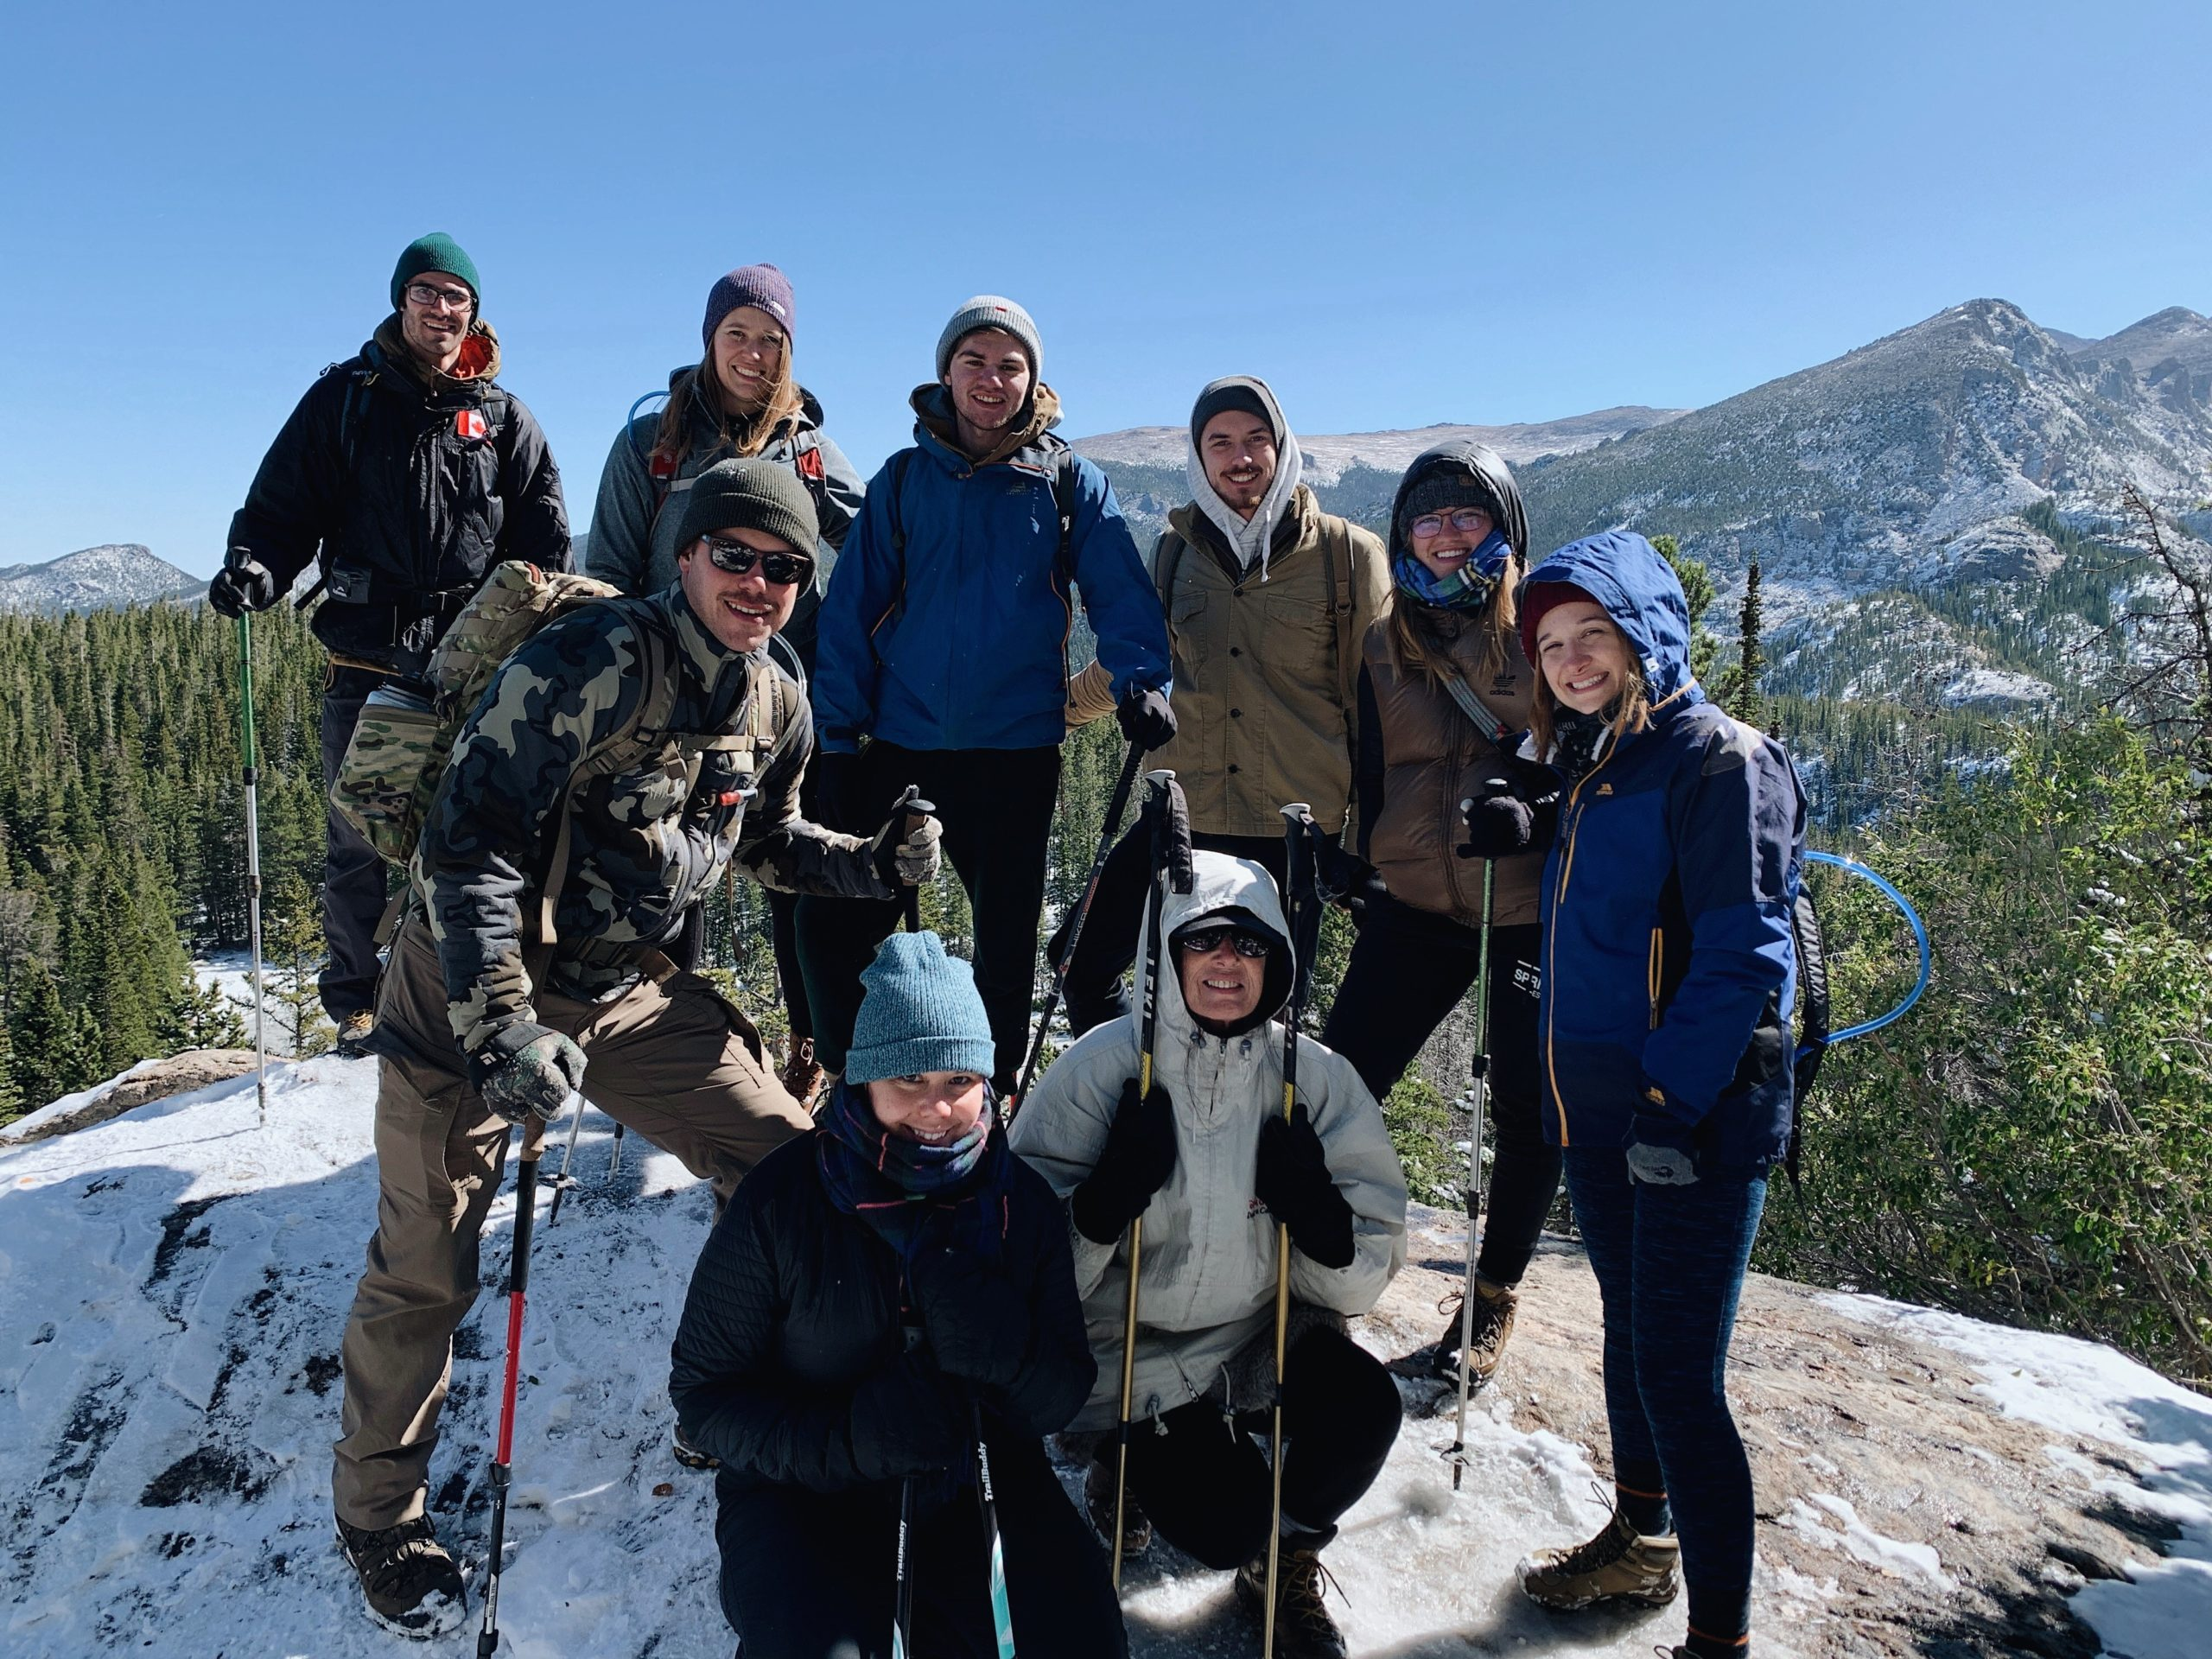 Students hiking outdoors in the mountains in the winter